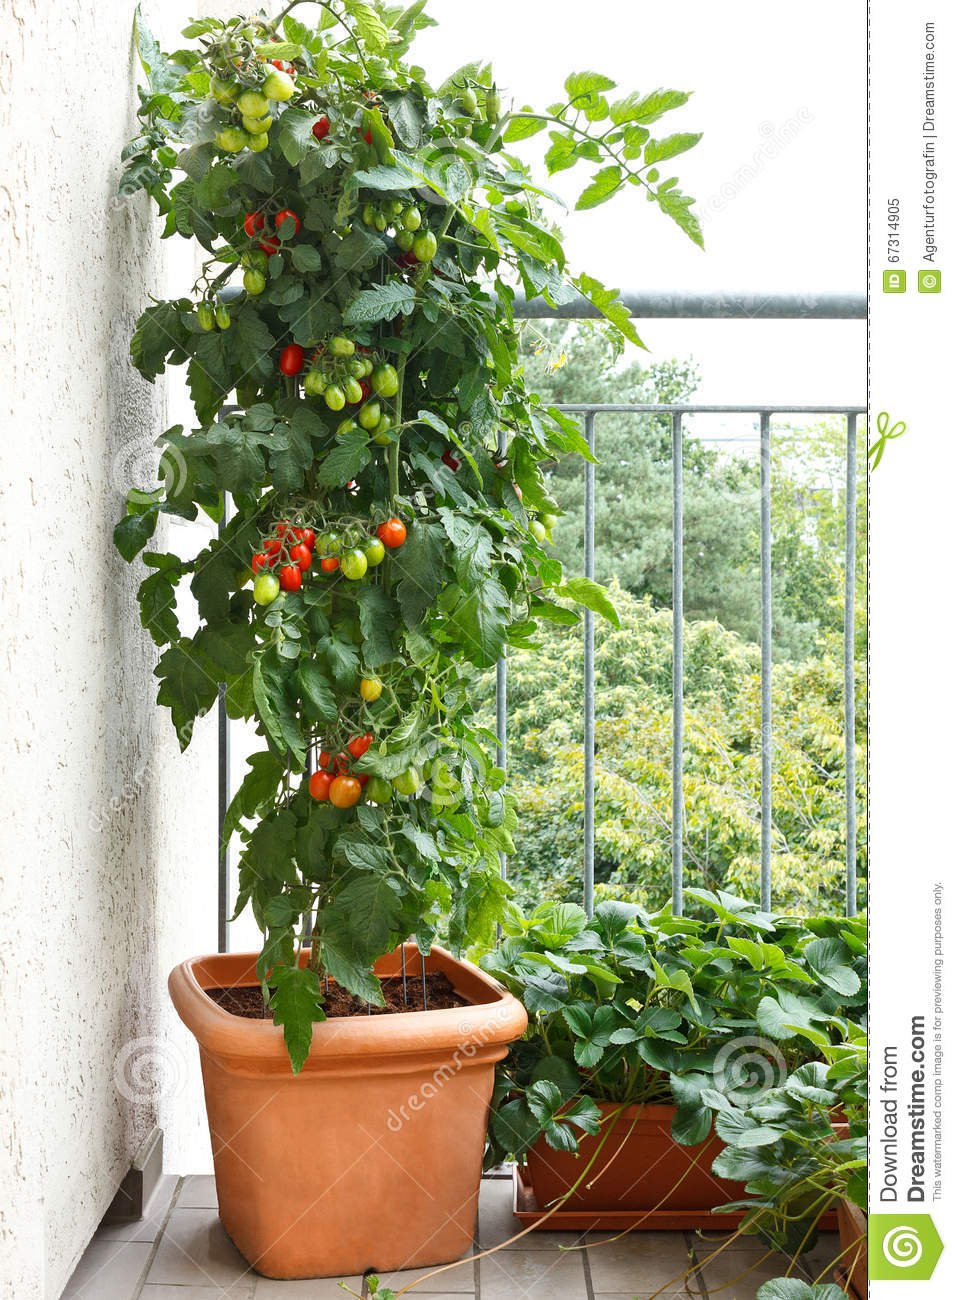 tomato plant pot balcony strawberry stock image image of cultivation house 67314905. Black Bedroom Furniture Sets. Home Design Ideas